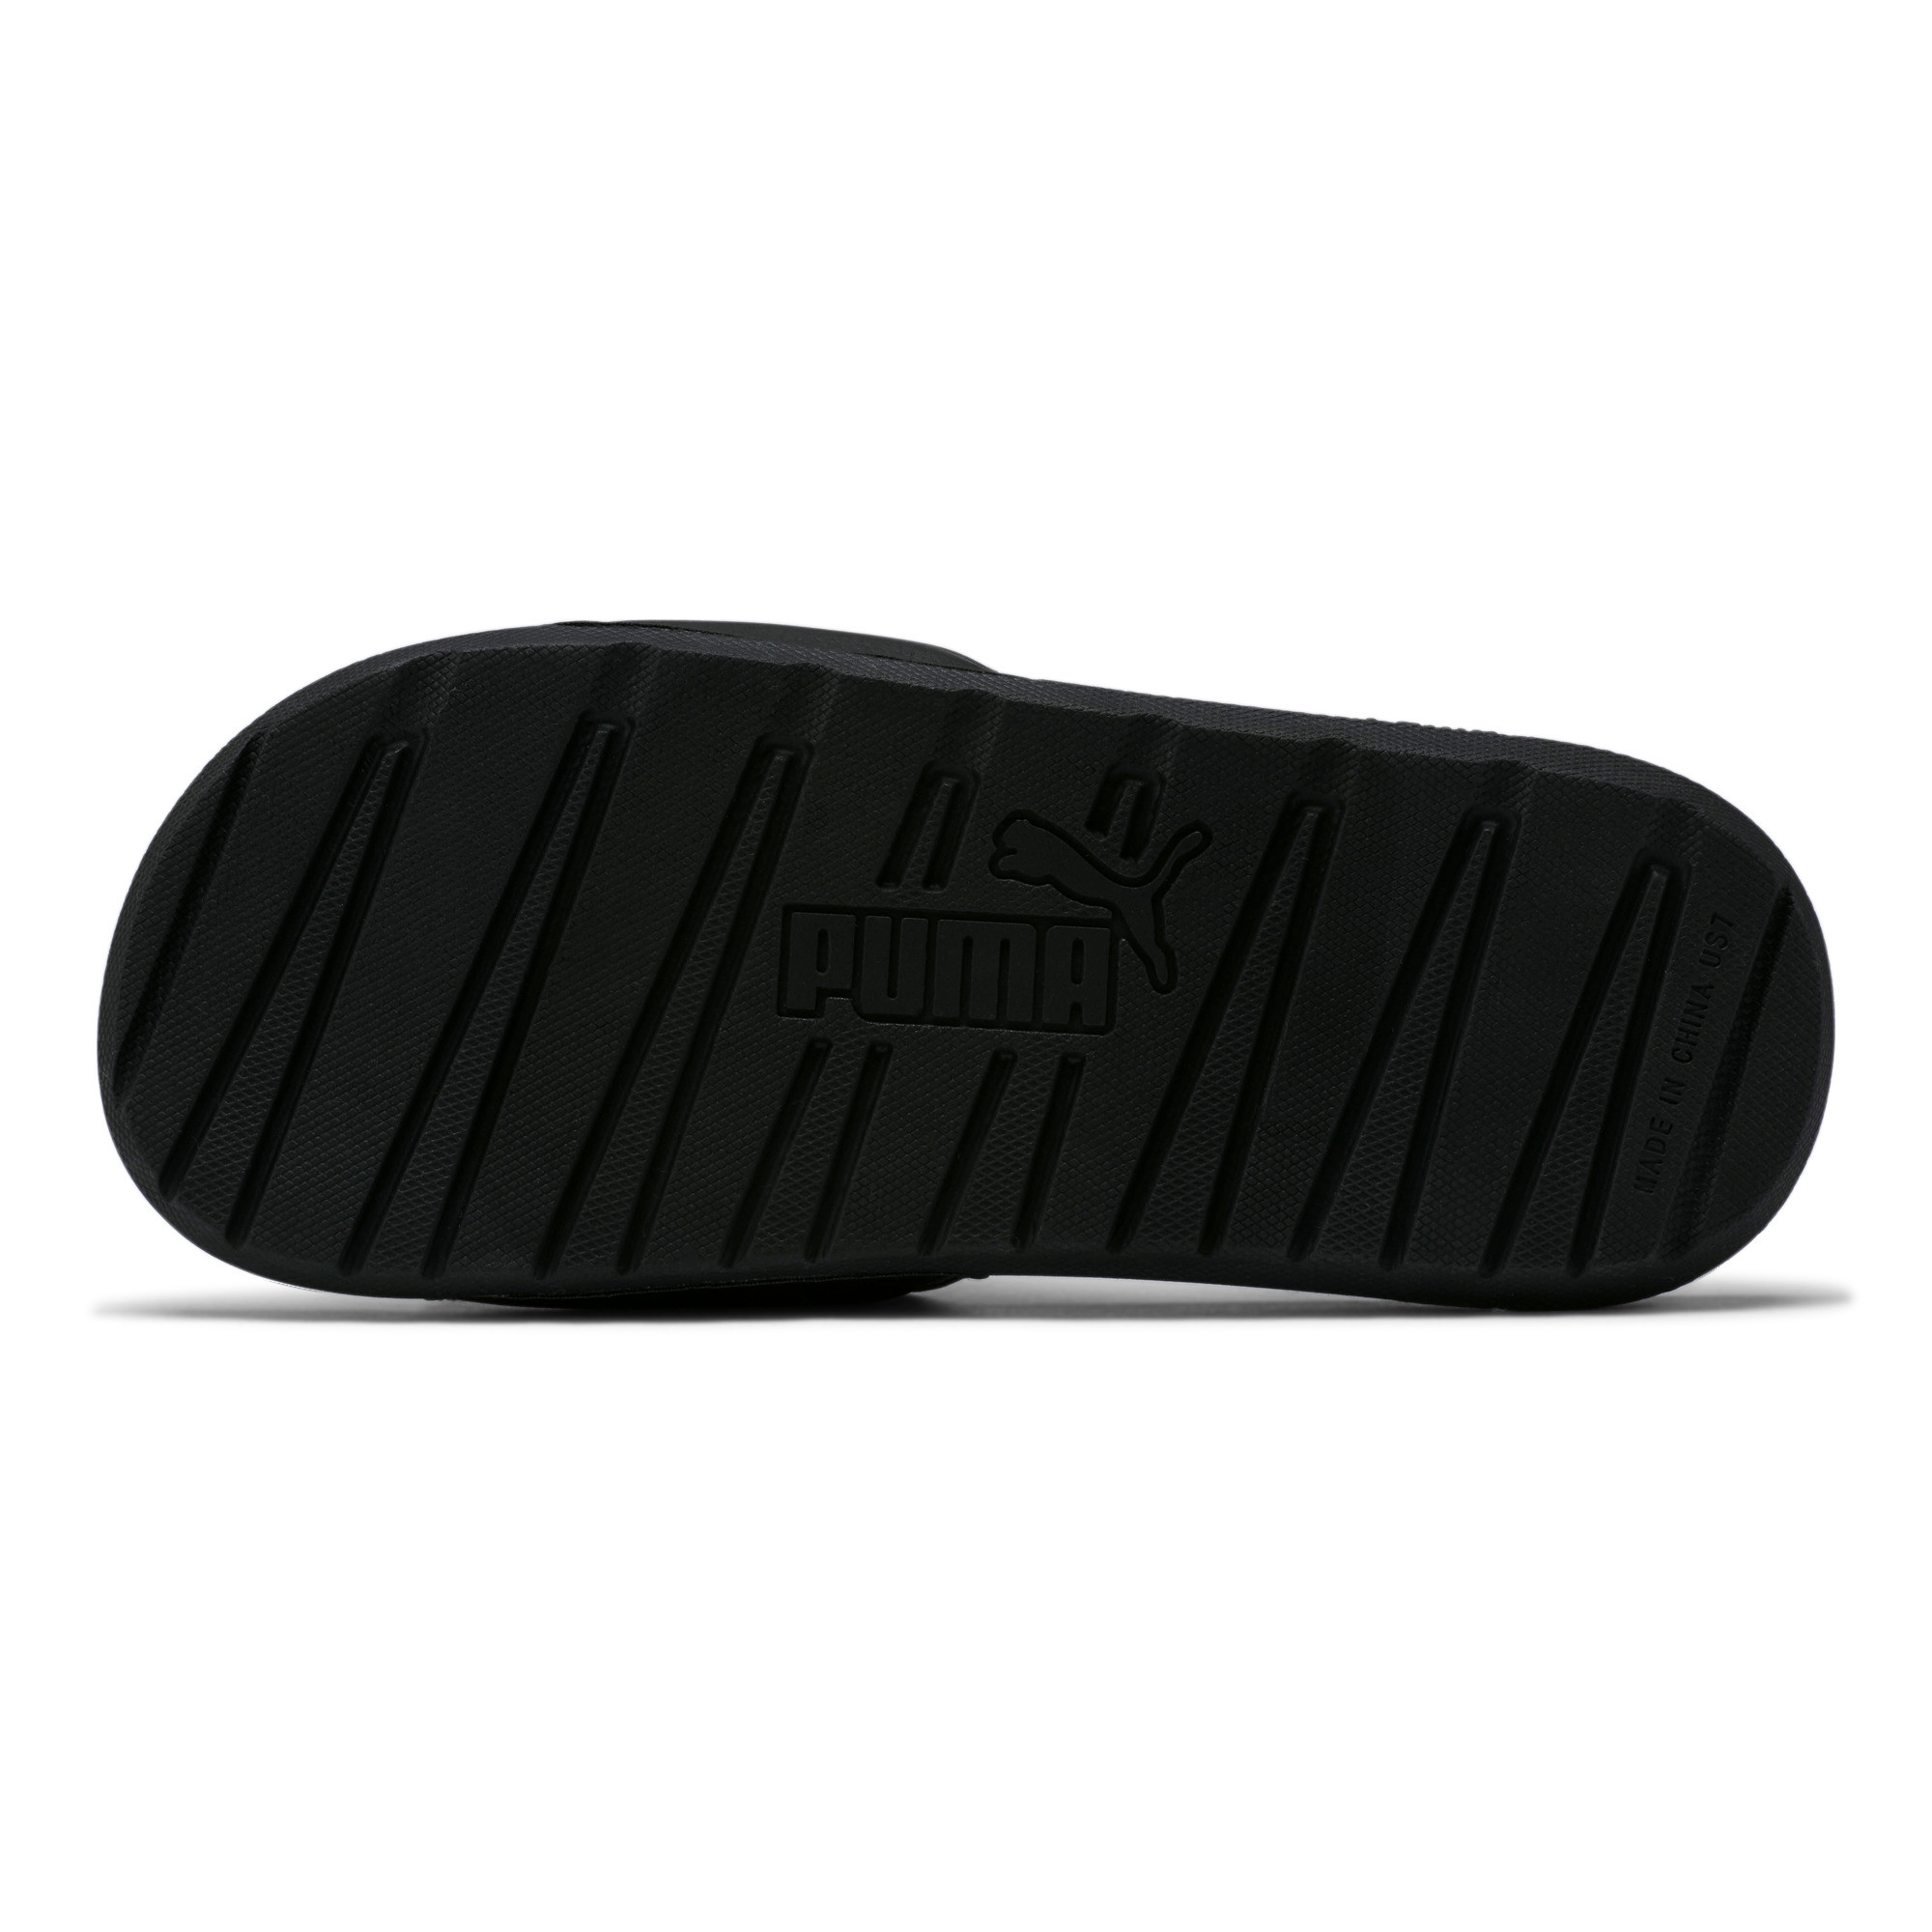 PUMA-Women-039-s-Cool-Cat-Slides thumbnail 5